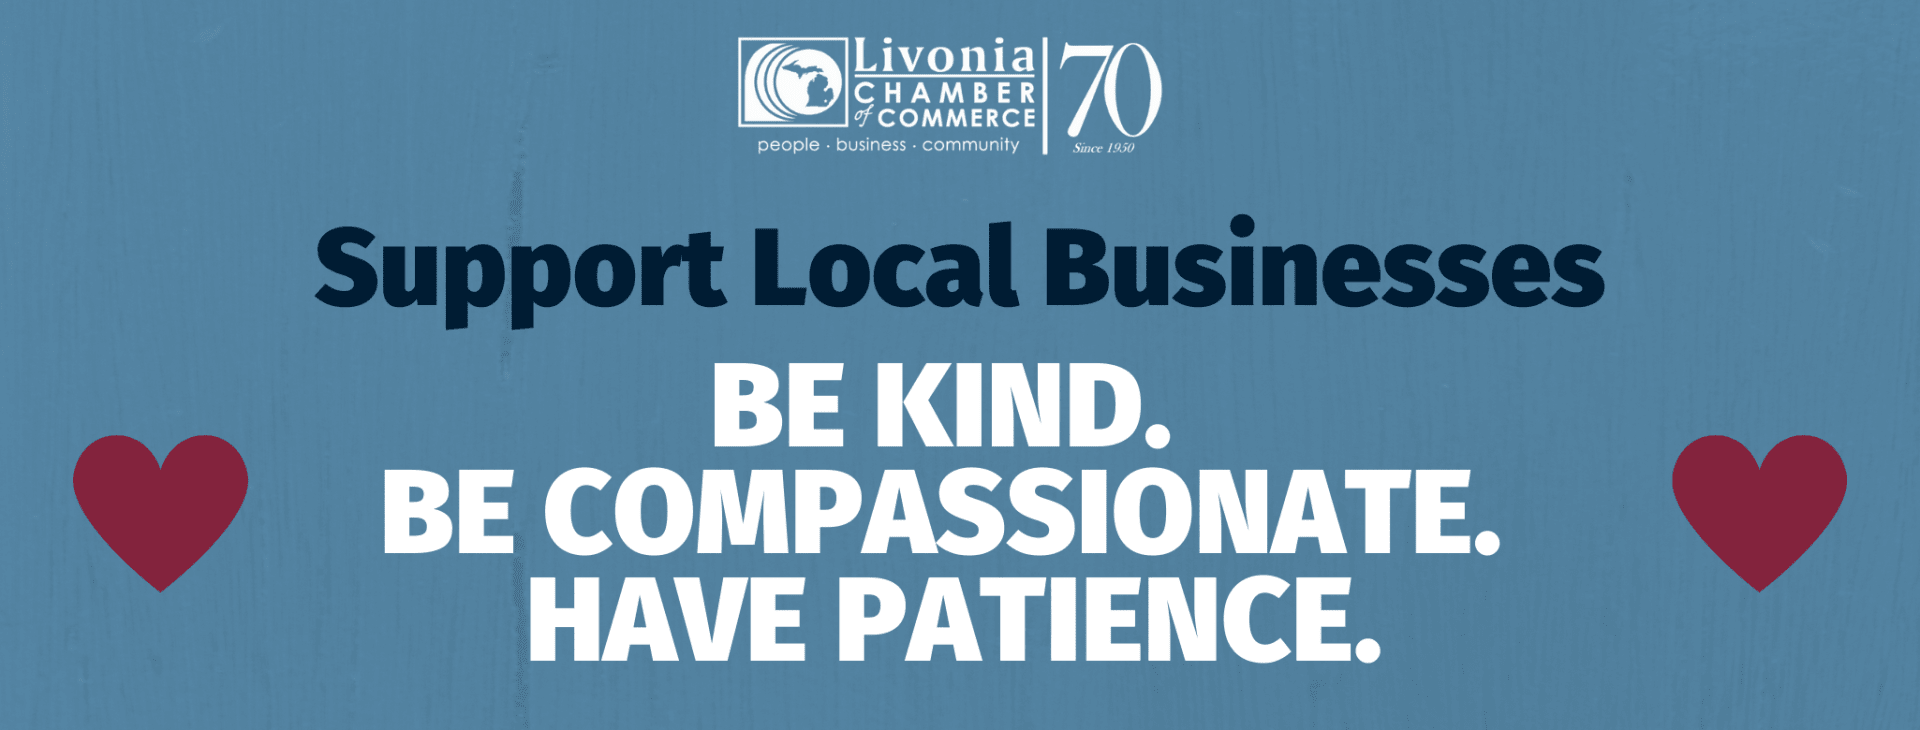 BE-KIND.-BE-COMPASSIONATE.-HAVE-PATIENCE.-w1920.png